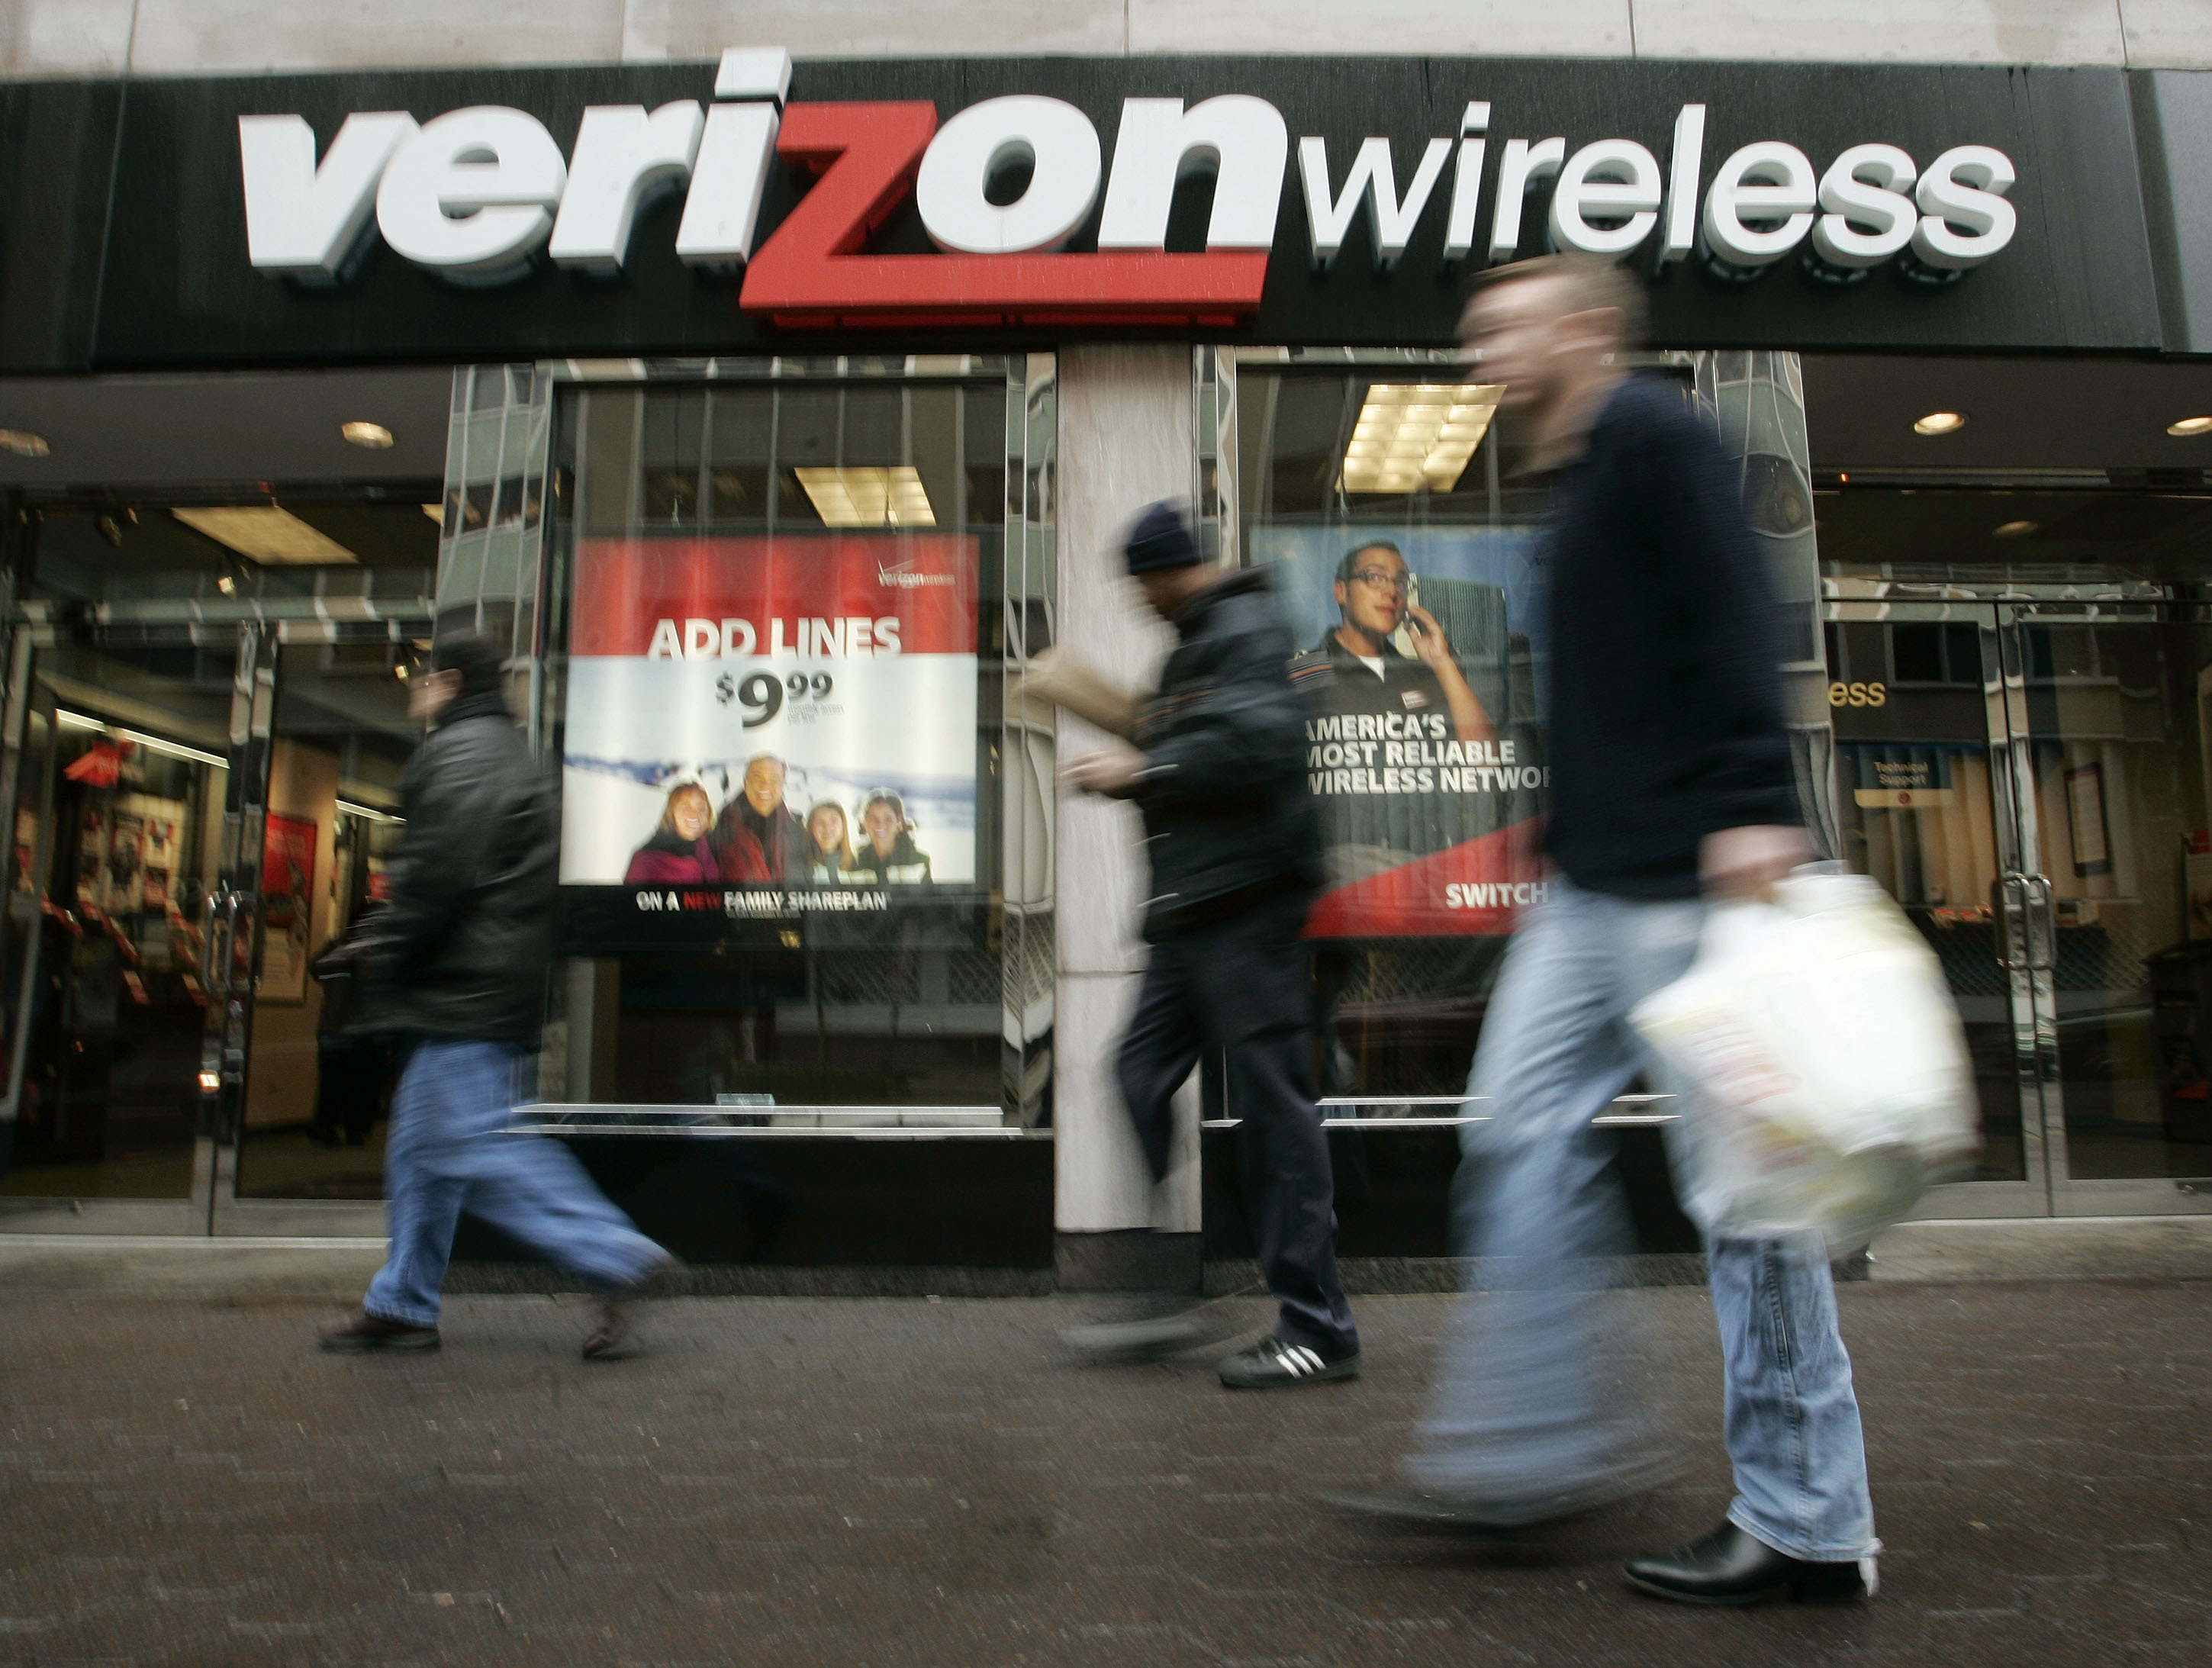 Pedestrians walk past a Verizon Wireless shop. Charles Dharapak /AP